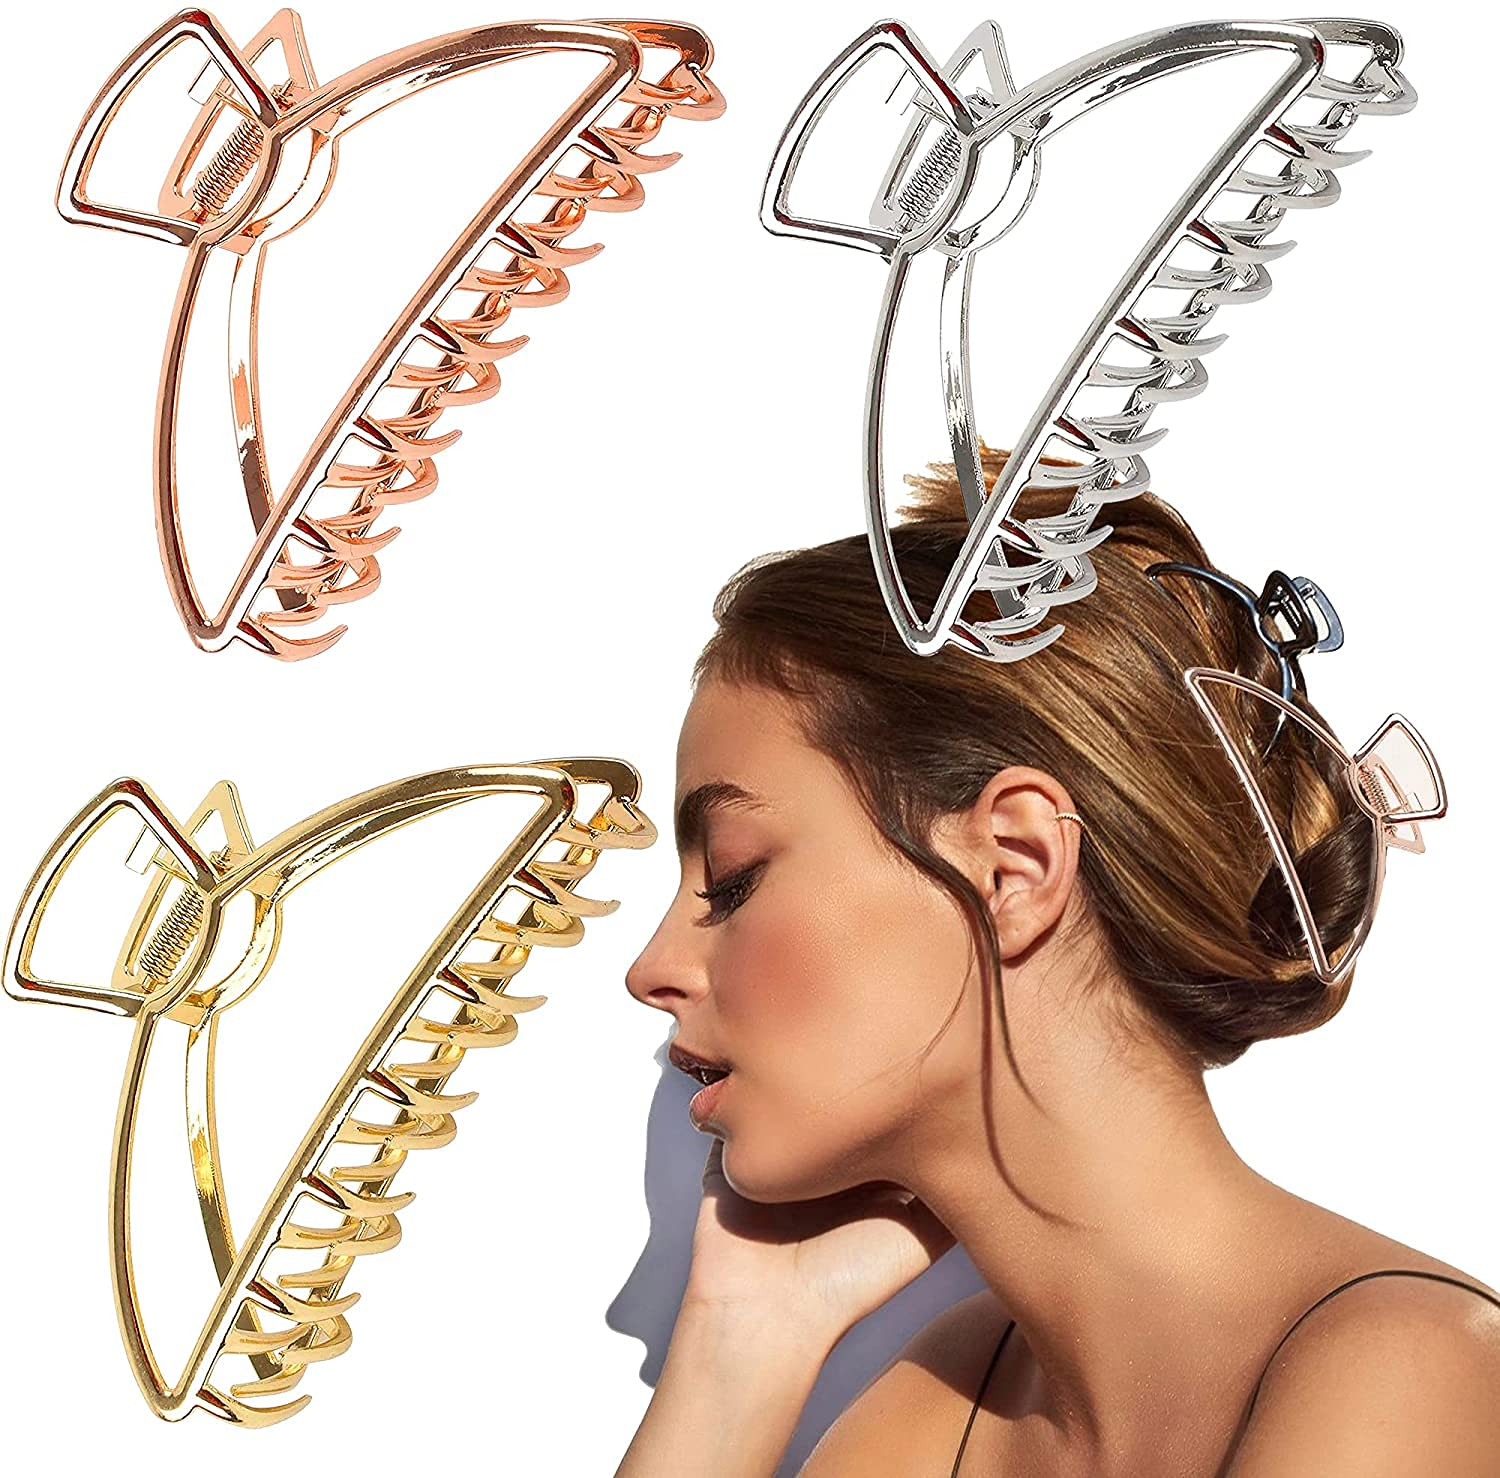 VinBee Our shop most popular 3 PACK Dealing full price reduction Large Metal Hair Claw Clips Catch Ja Barrette